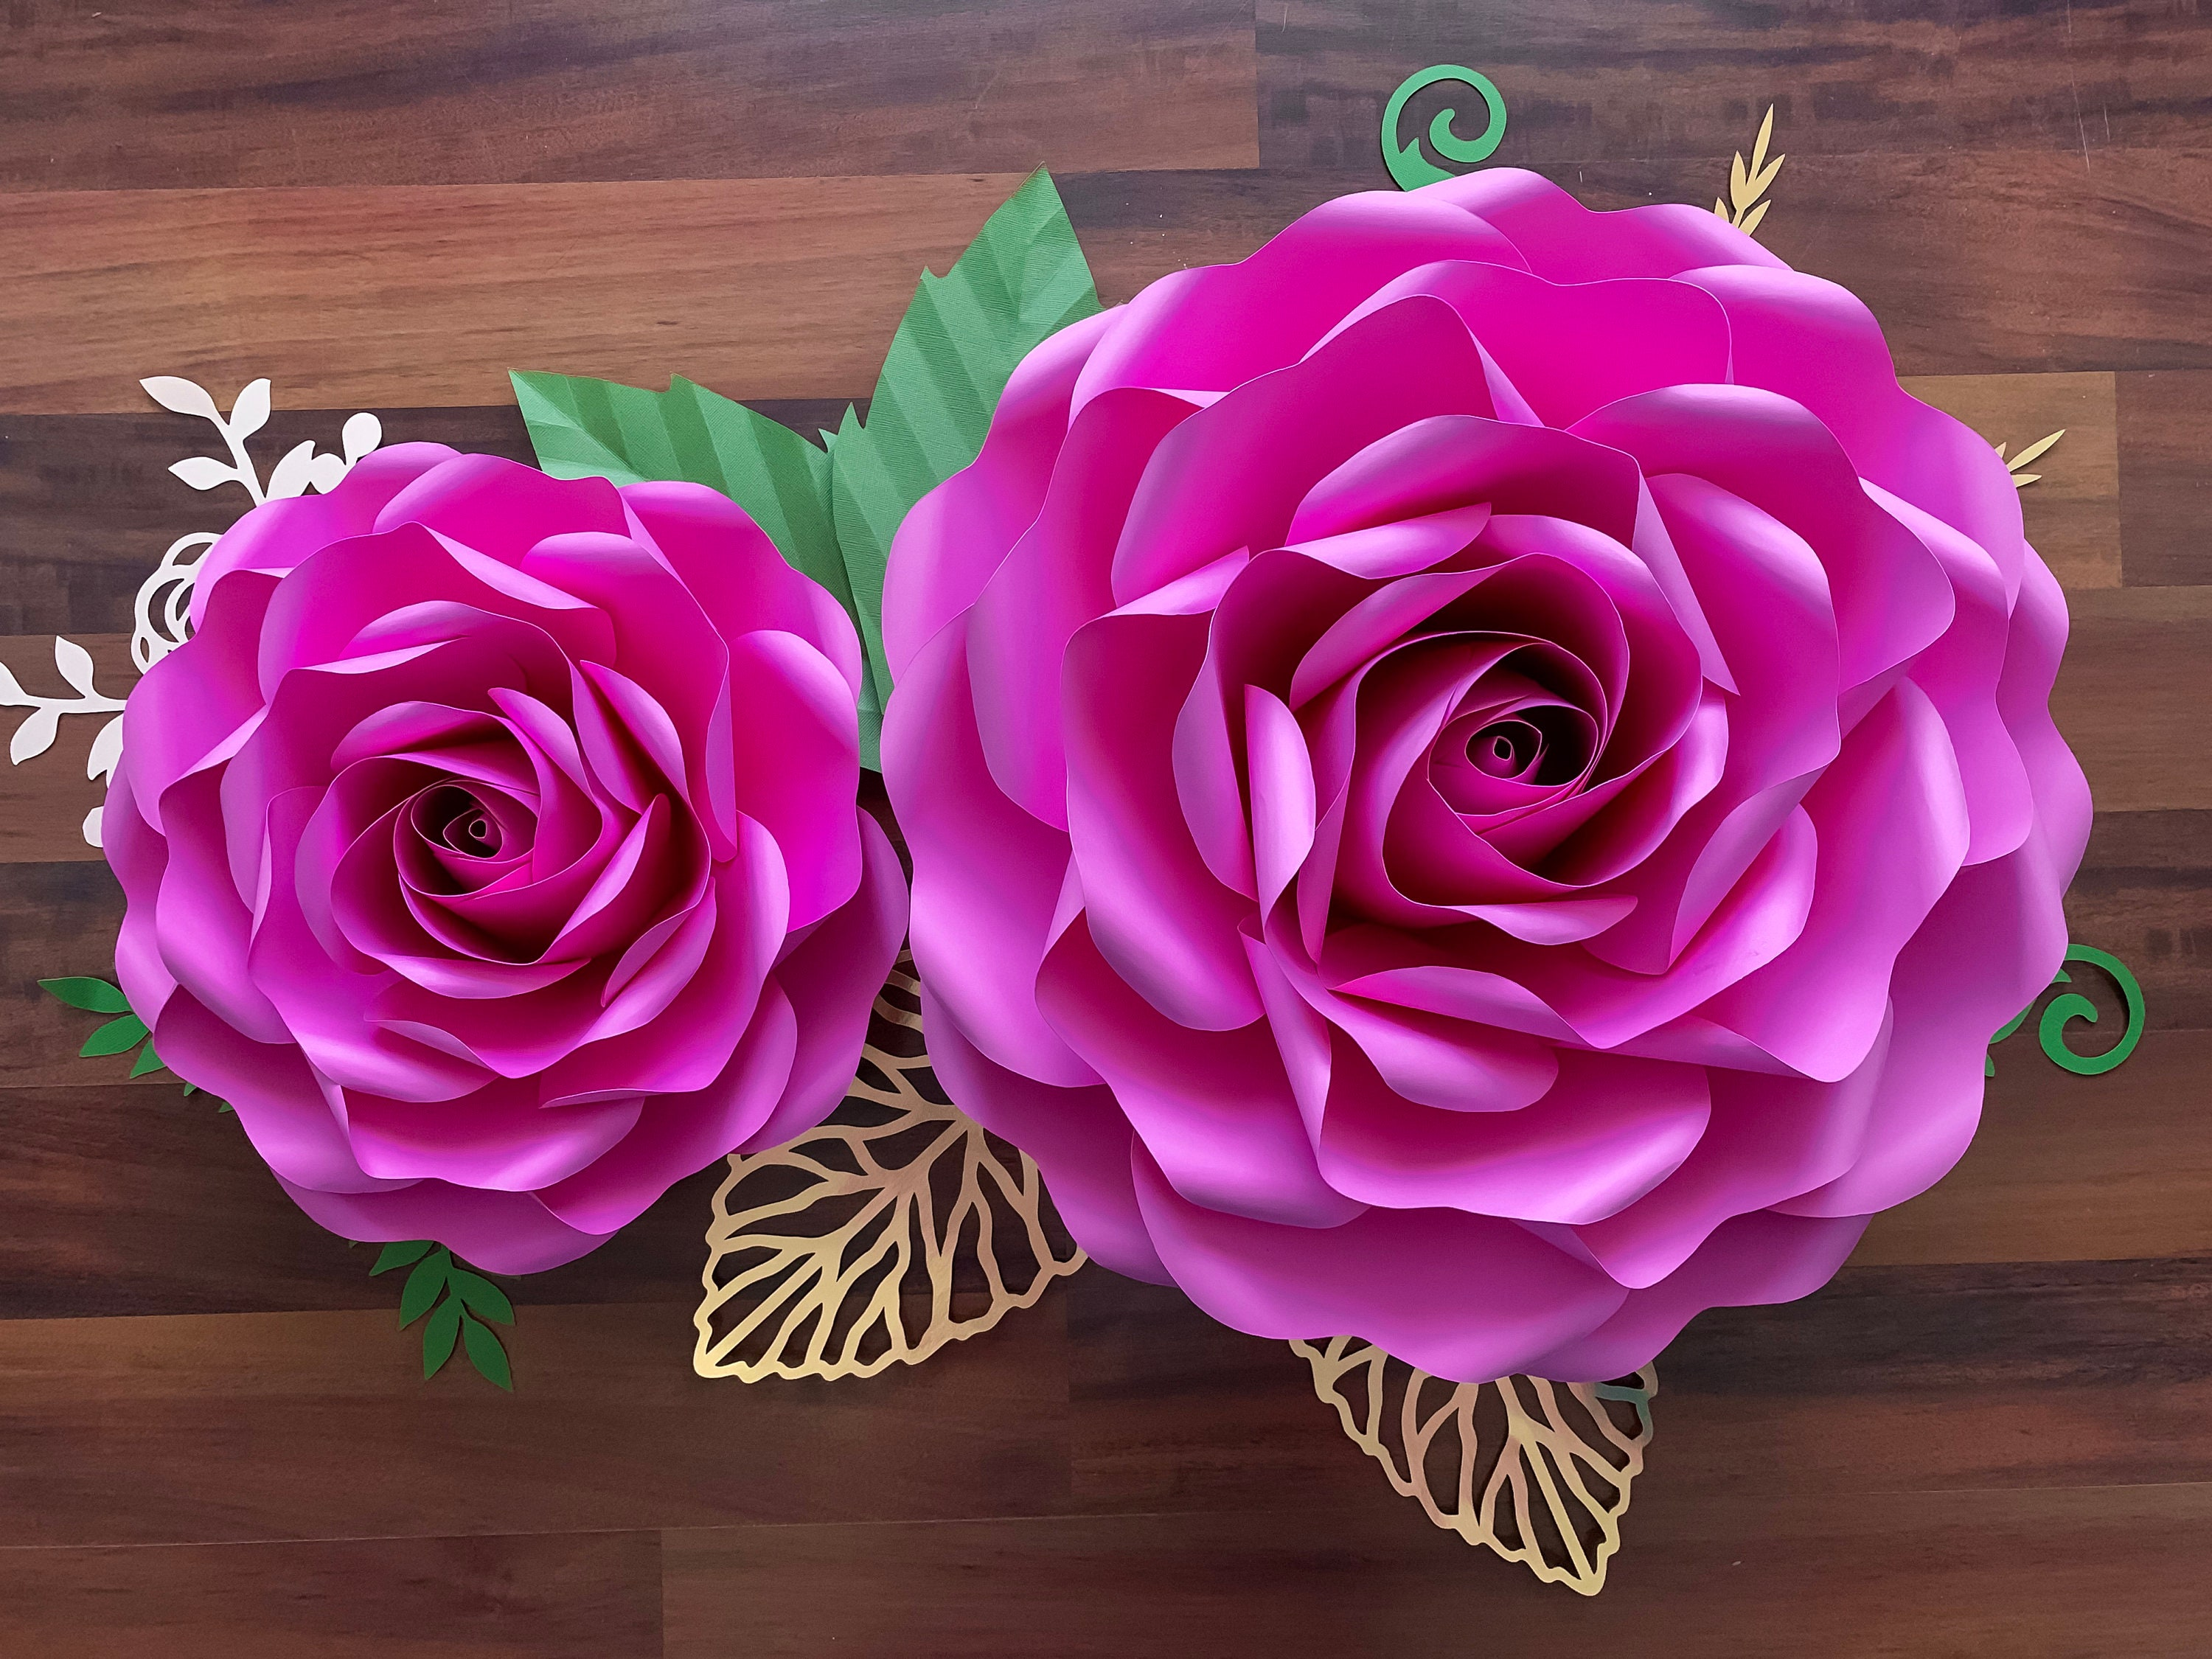 Extra Large PDF Full Size Rose 6 30 34 inches Rose when